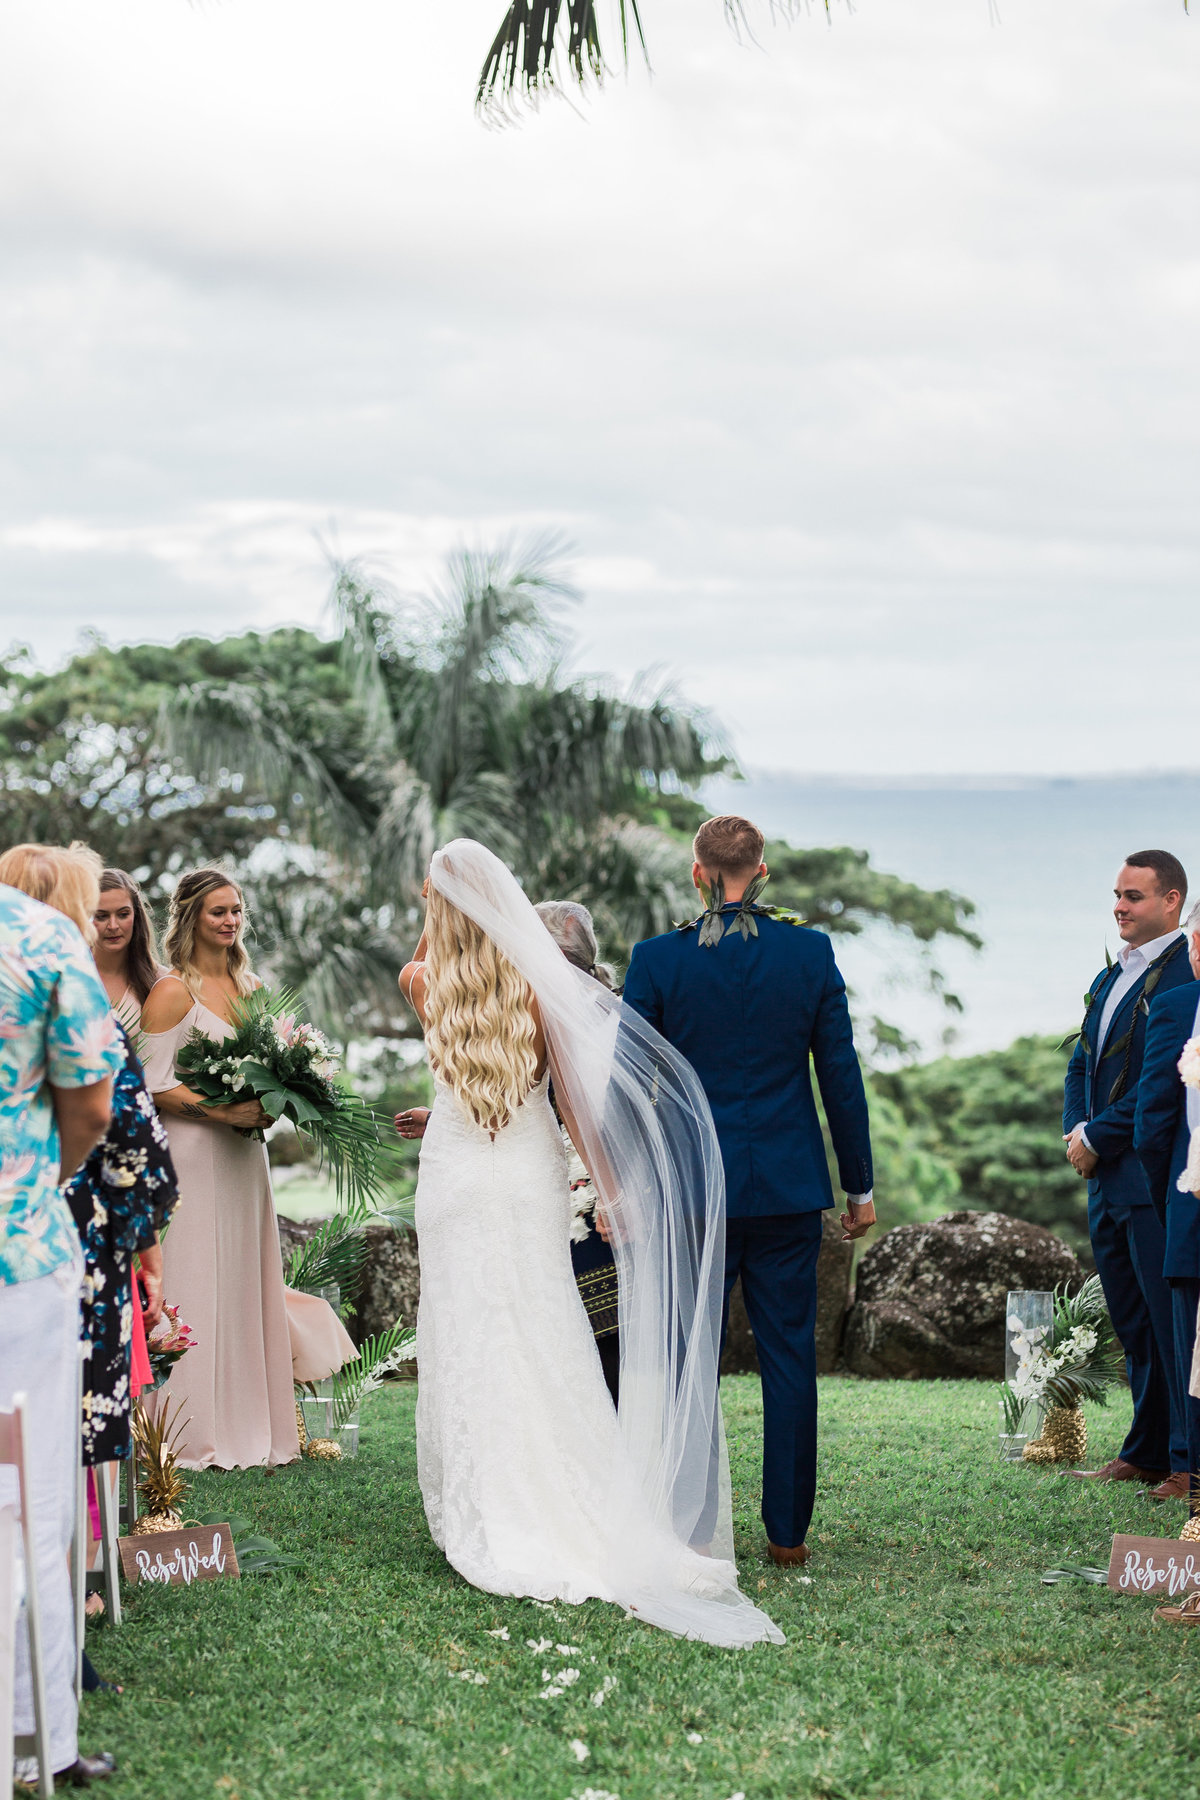 paliku gardens kualoa ranch wedding 6A0522-4